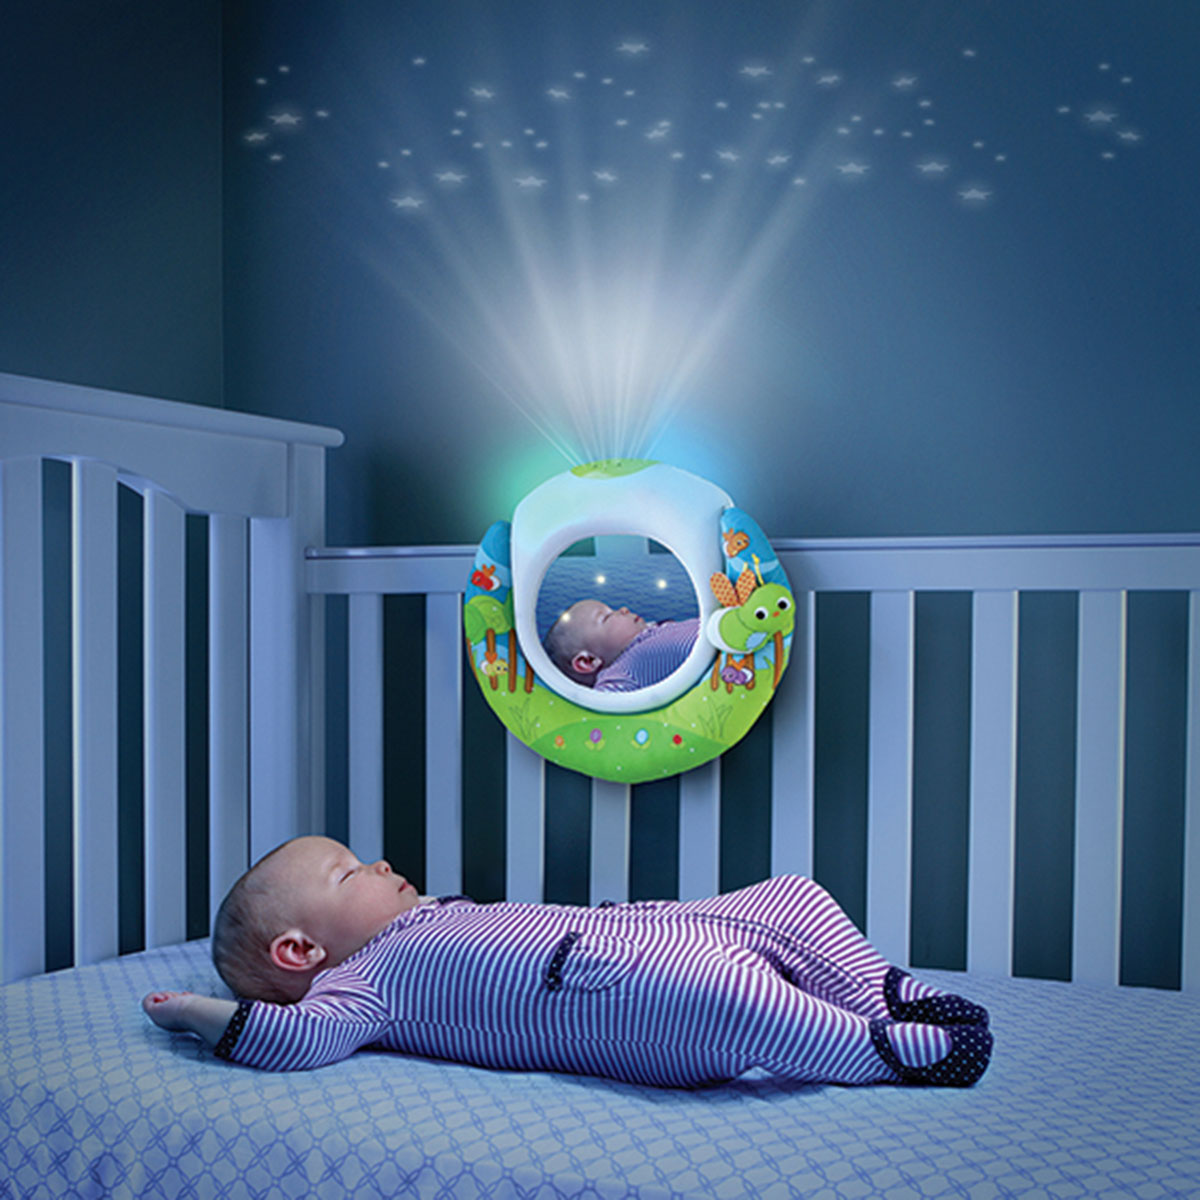 Light Bulb For Baby Room Nursery Night Light Projector Thenurseries